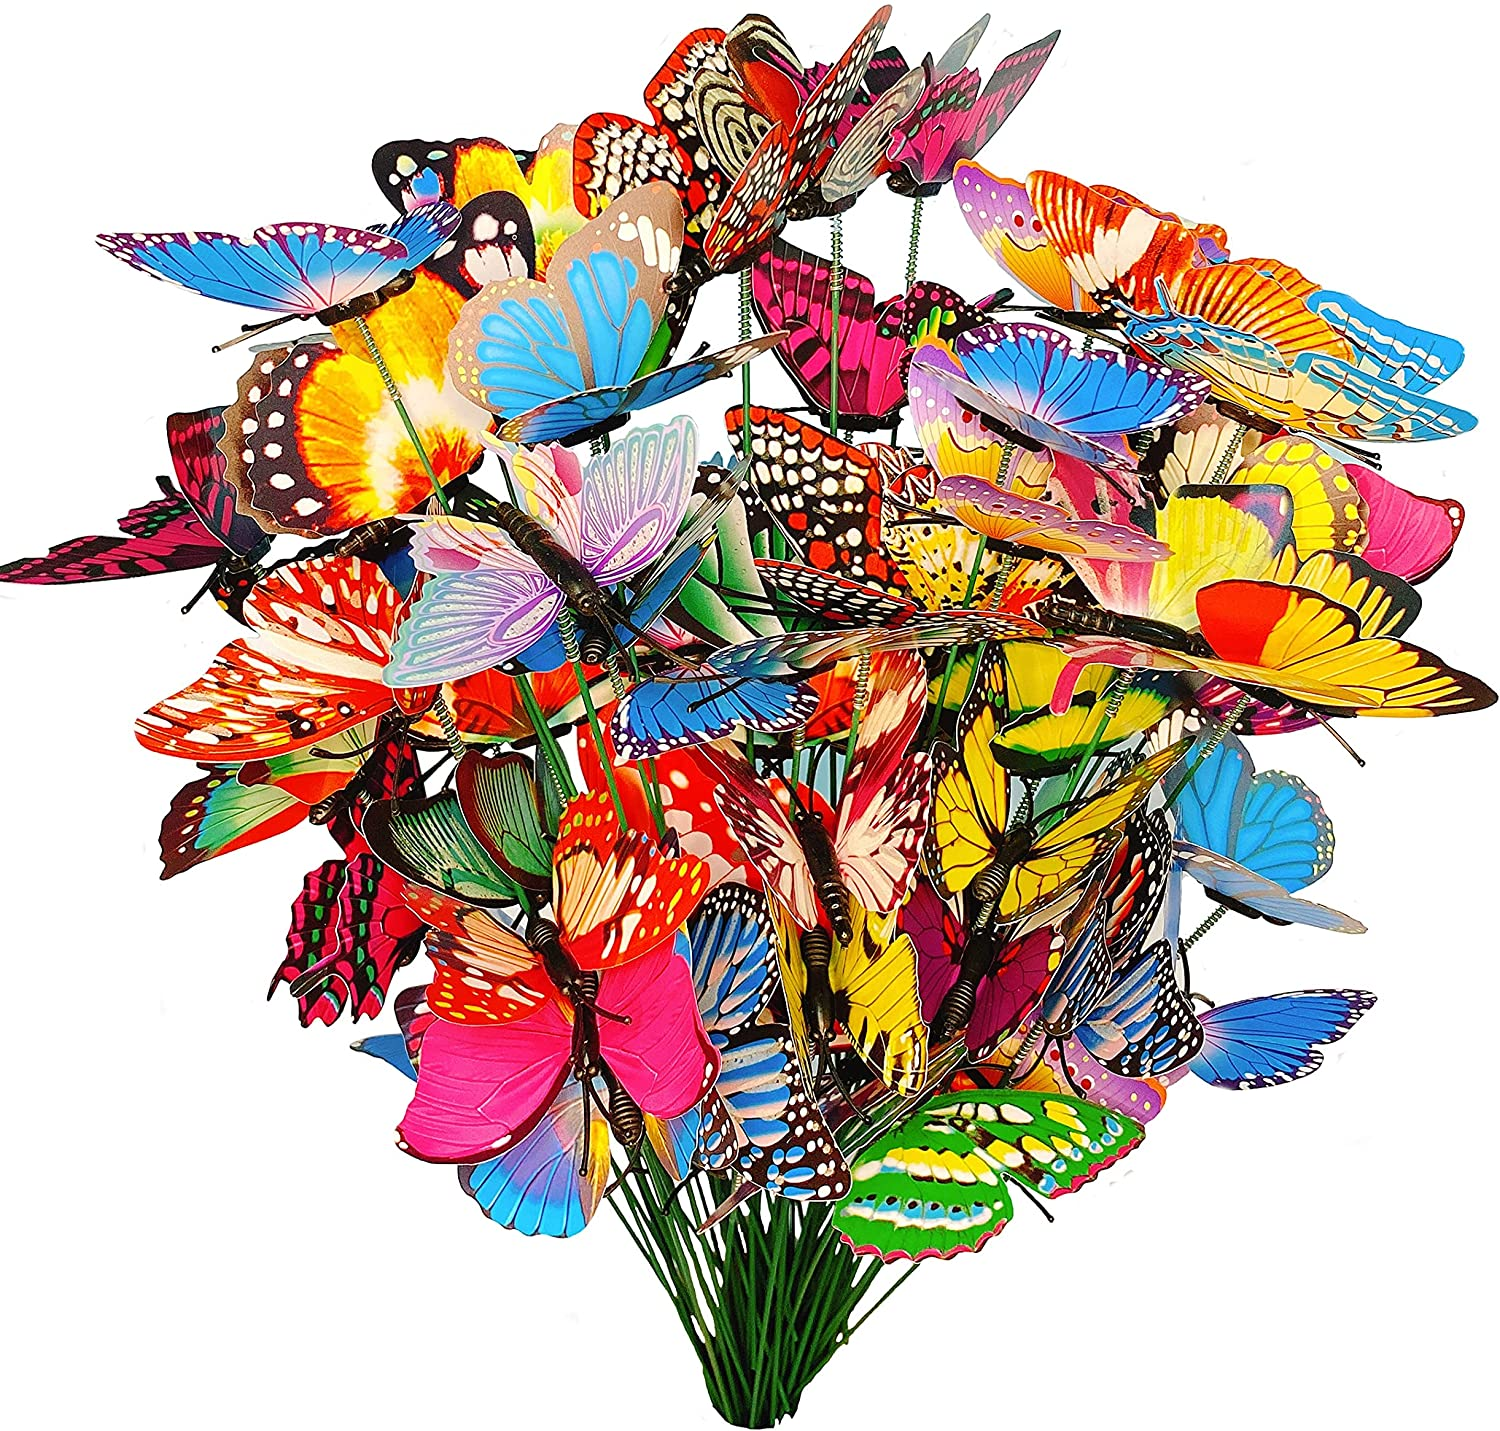 50 Pcs Butterfly Stakes, Waterproof Butterflies Stakes Garden Ornaments & Patio Decor Butterfly Party Supplies Yard Stakes Decorative for Outdoor Christmas Decorations…